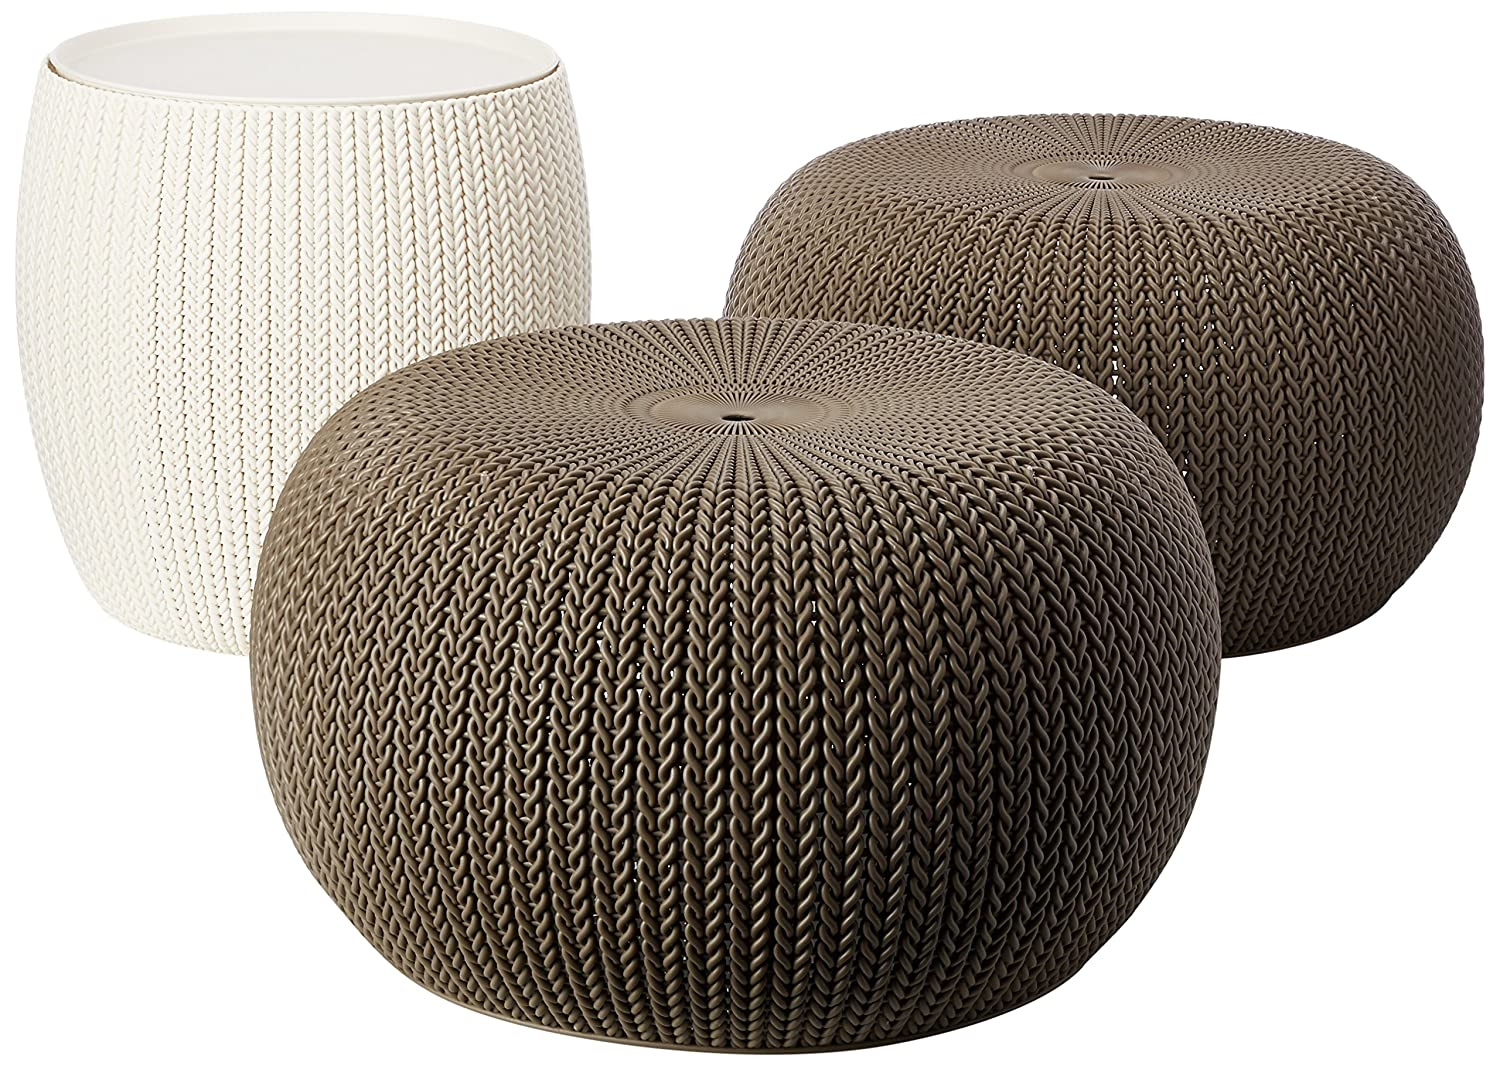 Keter 234242 Urban Knit Pouf Set, Cloudy Grey/Oasis White